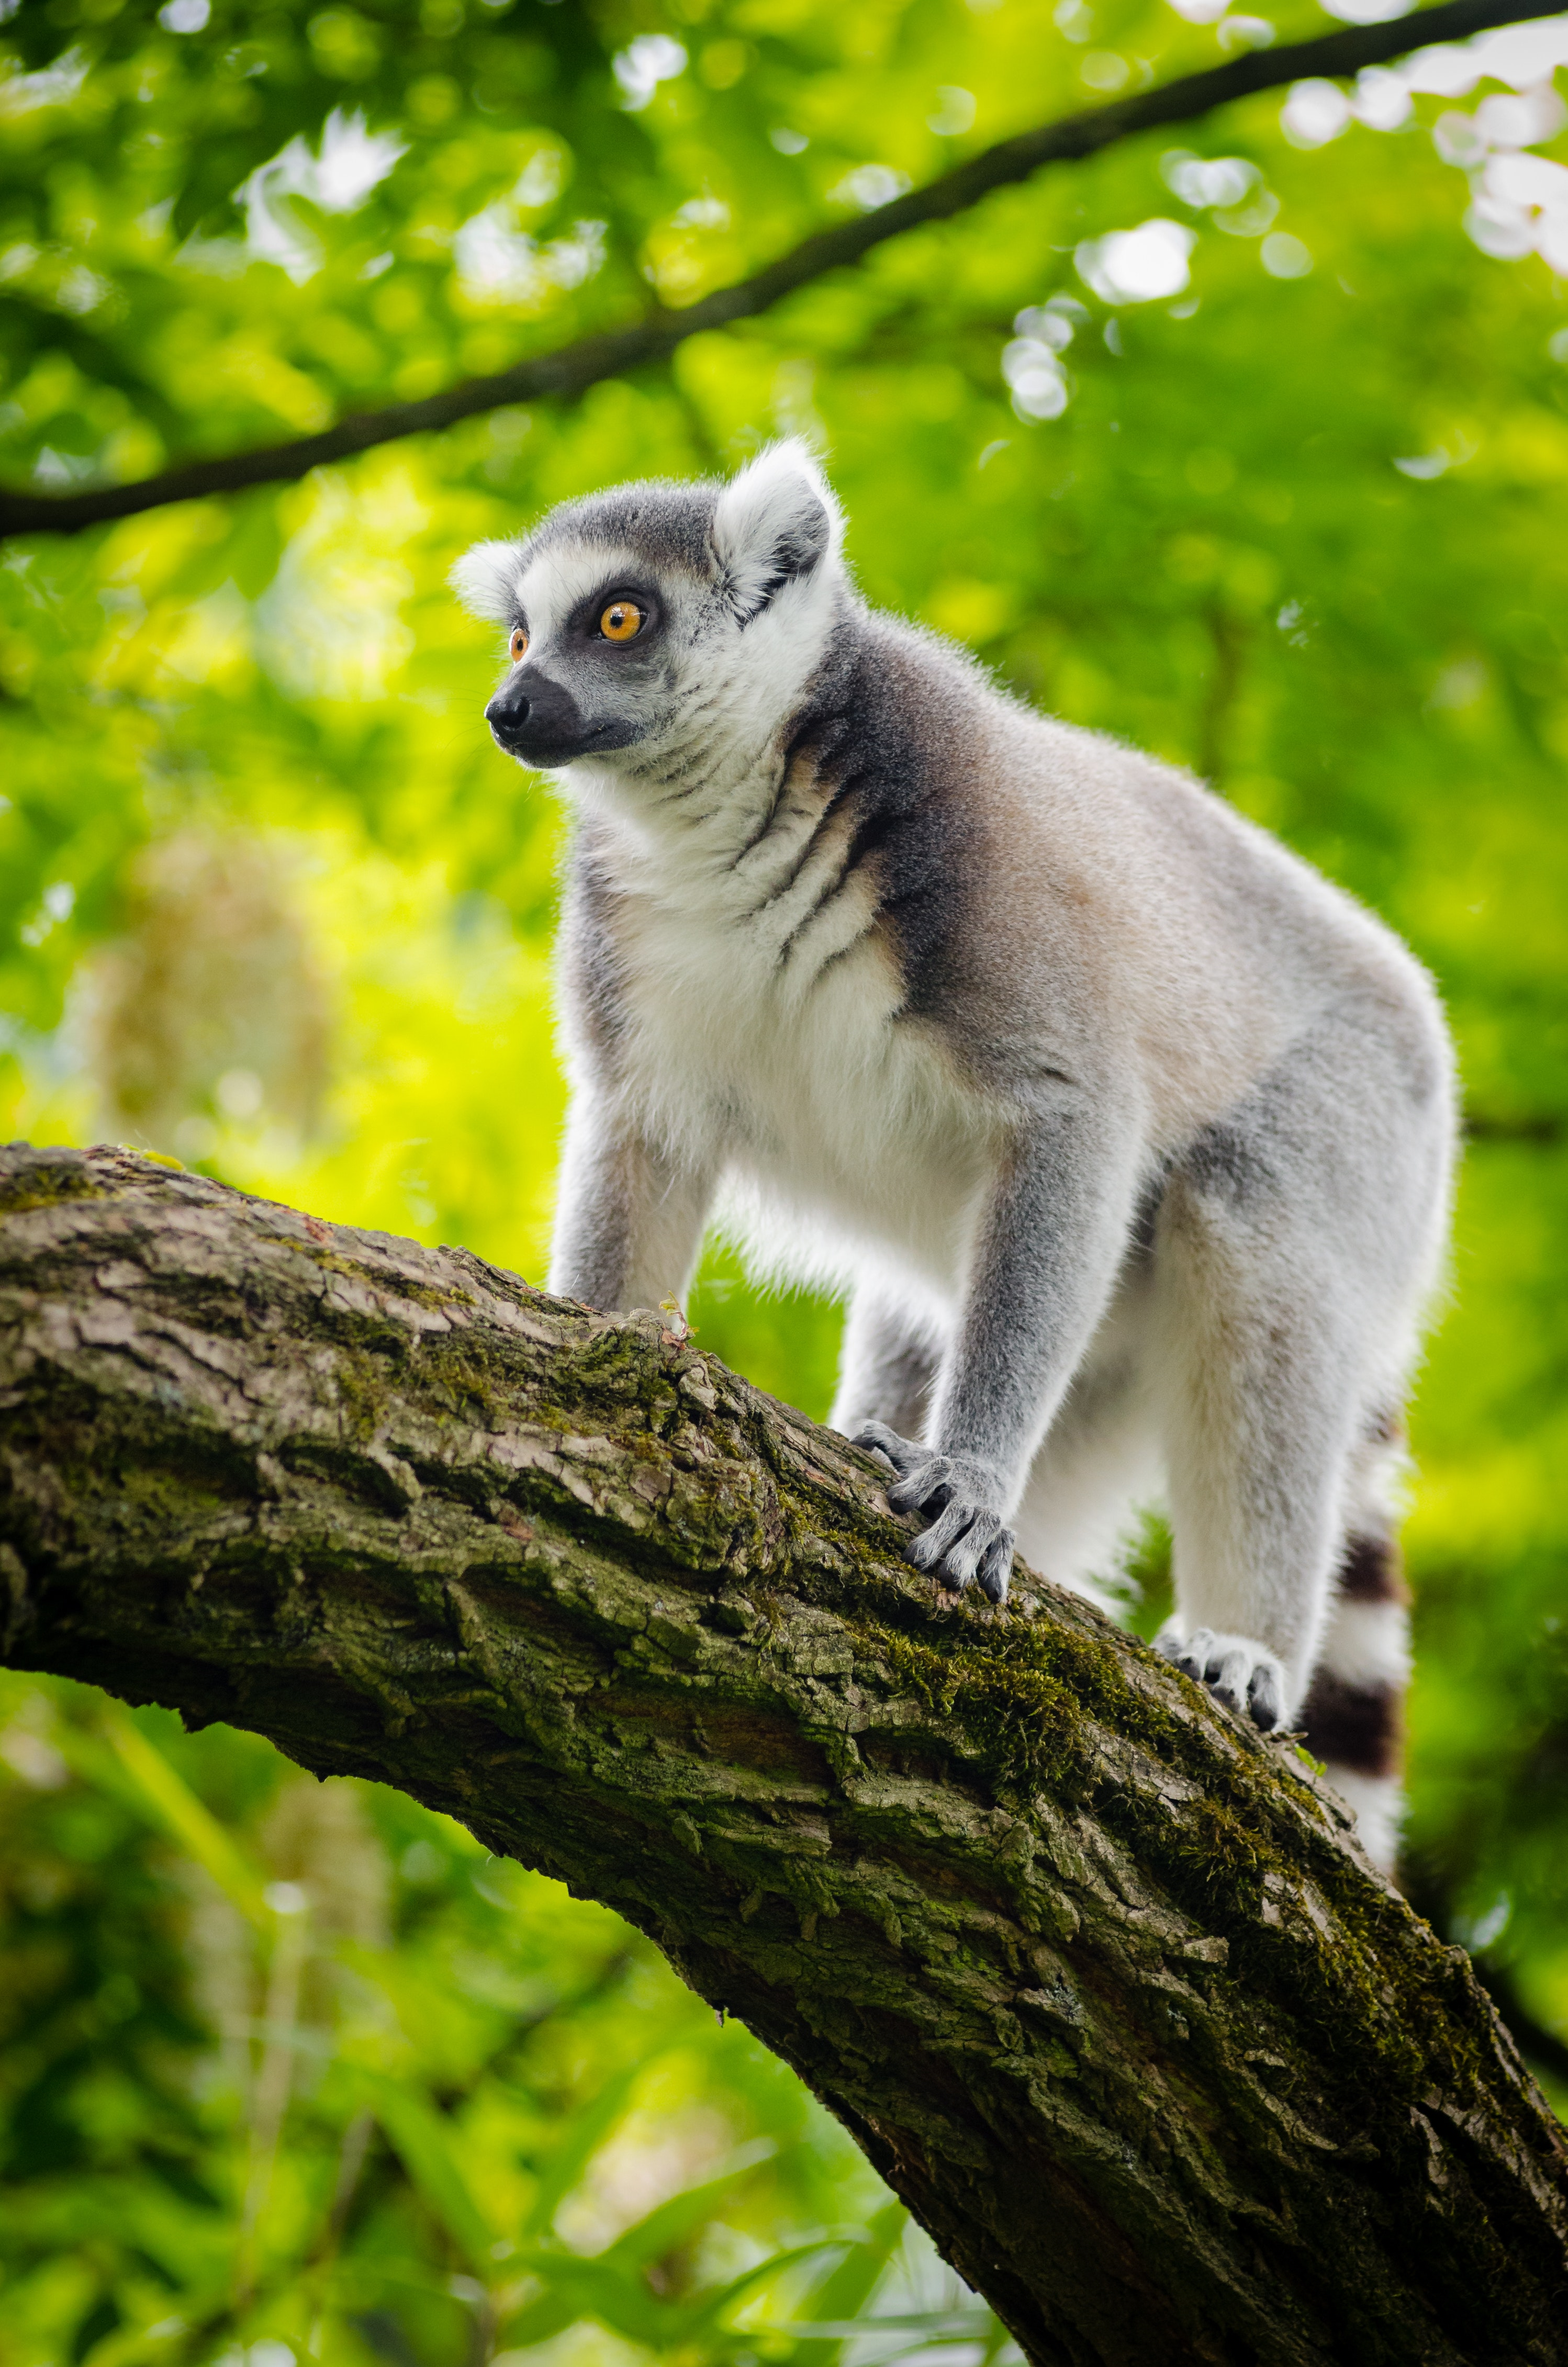 White and gray lemur on tree trunk photo